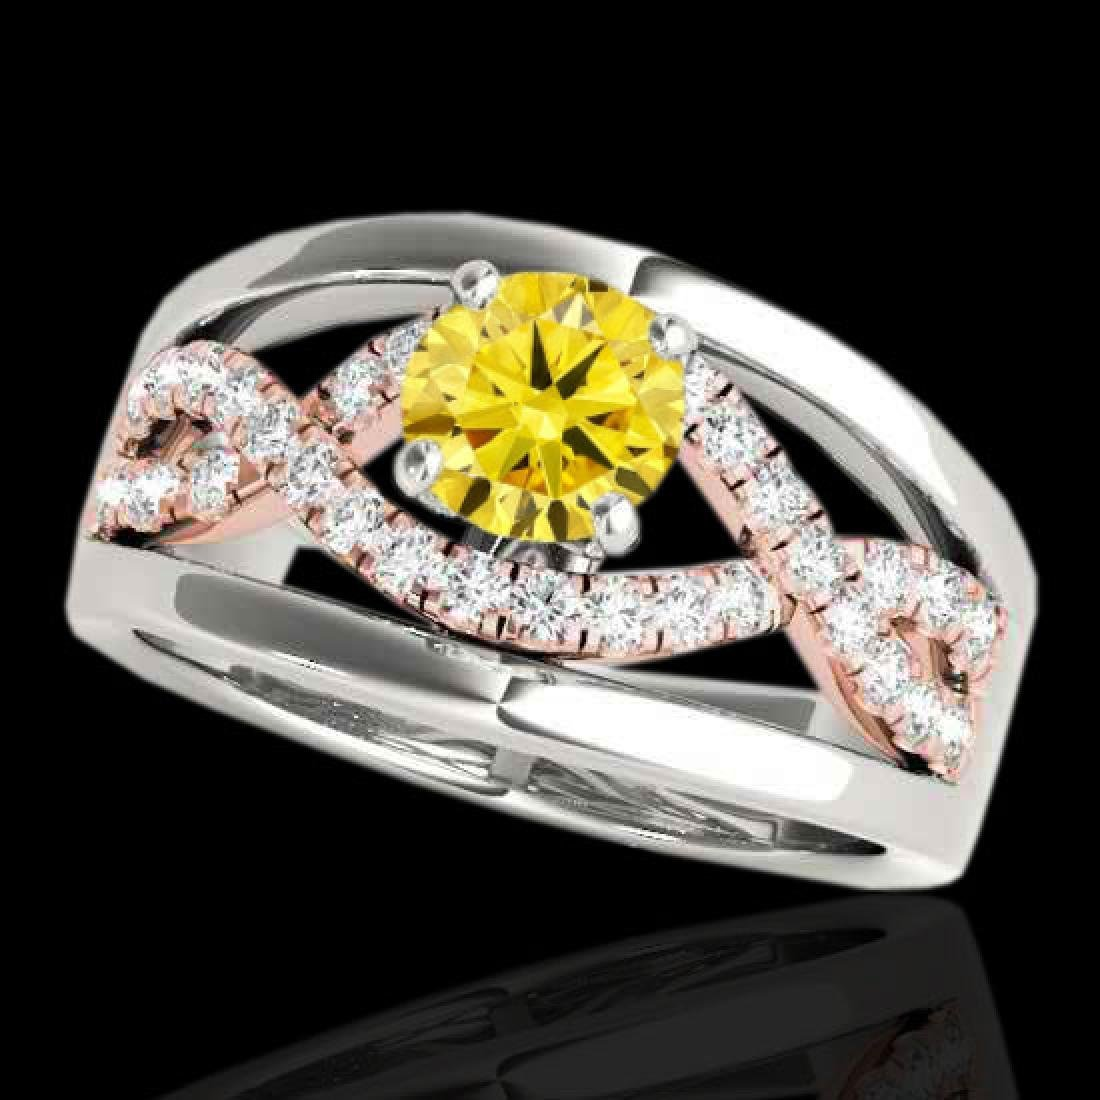 1.55 CTW Certified Si Intense Yellow Diamond Solitaire